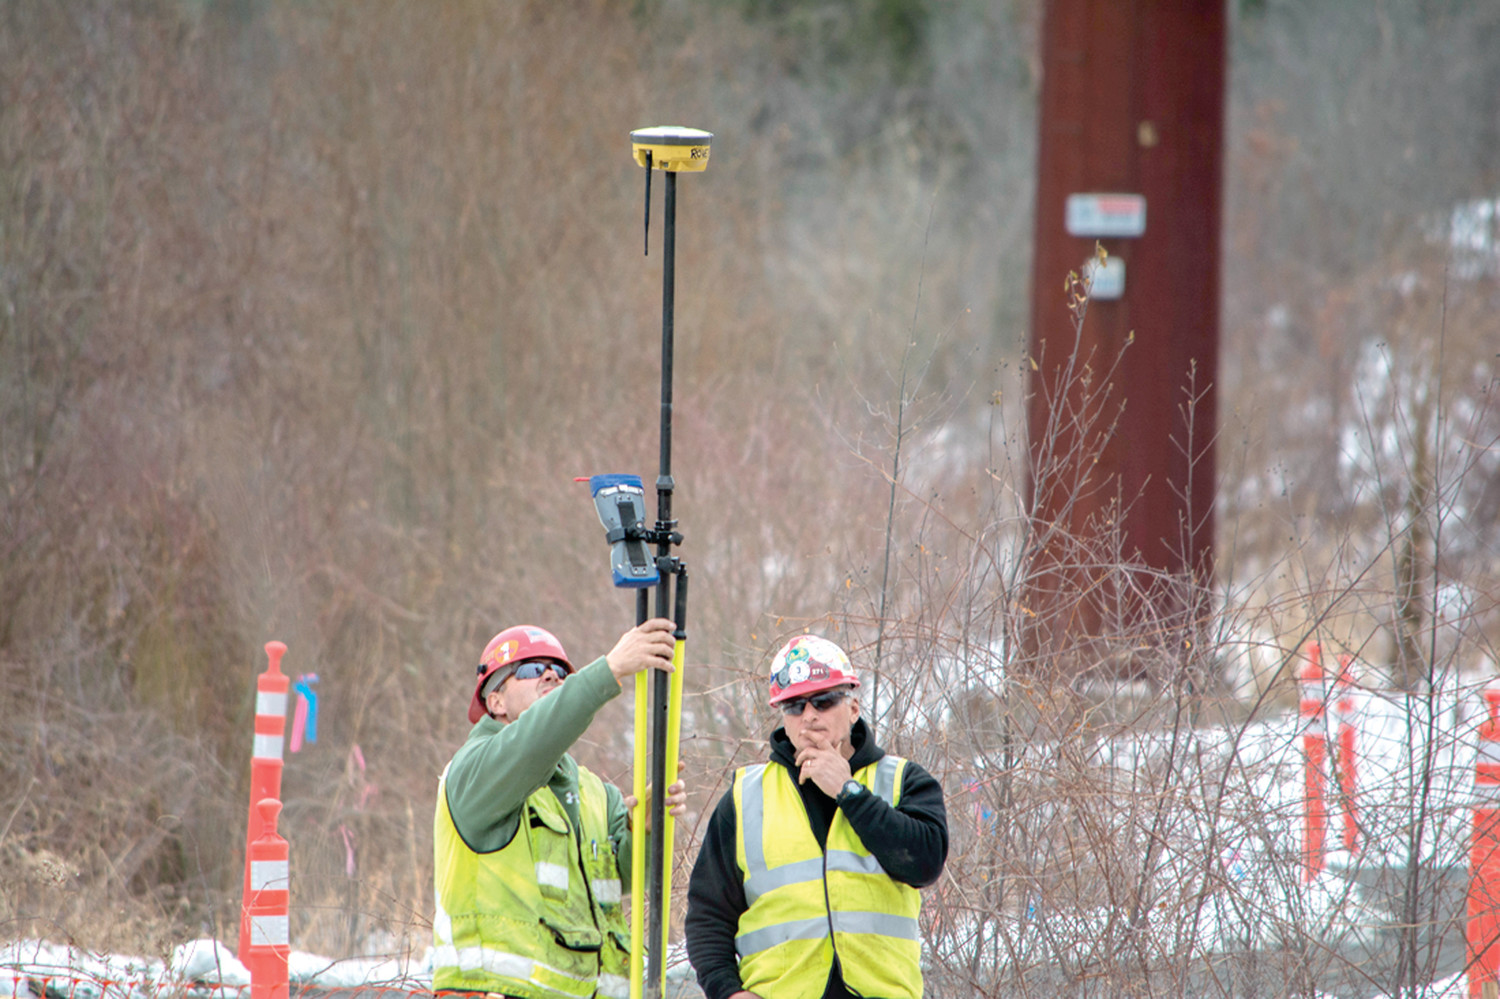 TAKING MEASUREMENTS: A crew takes readings under high-tension lines near the site for a substation.